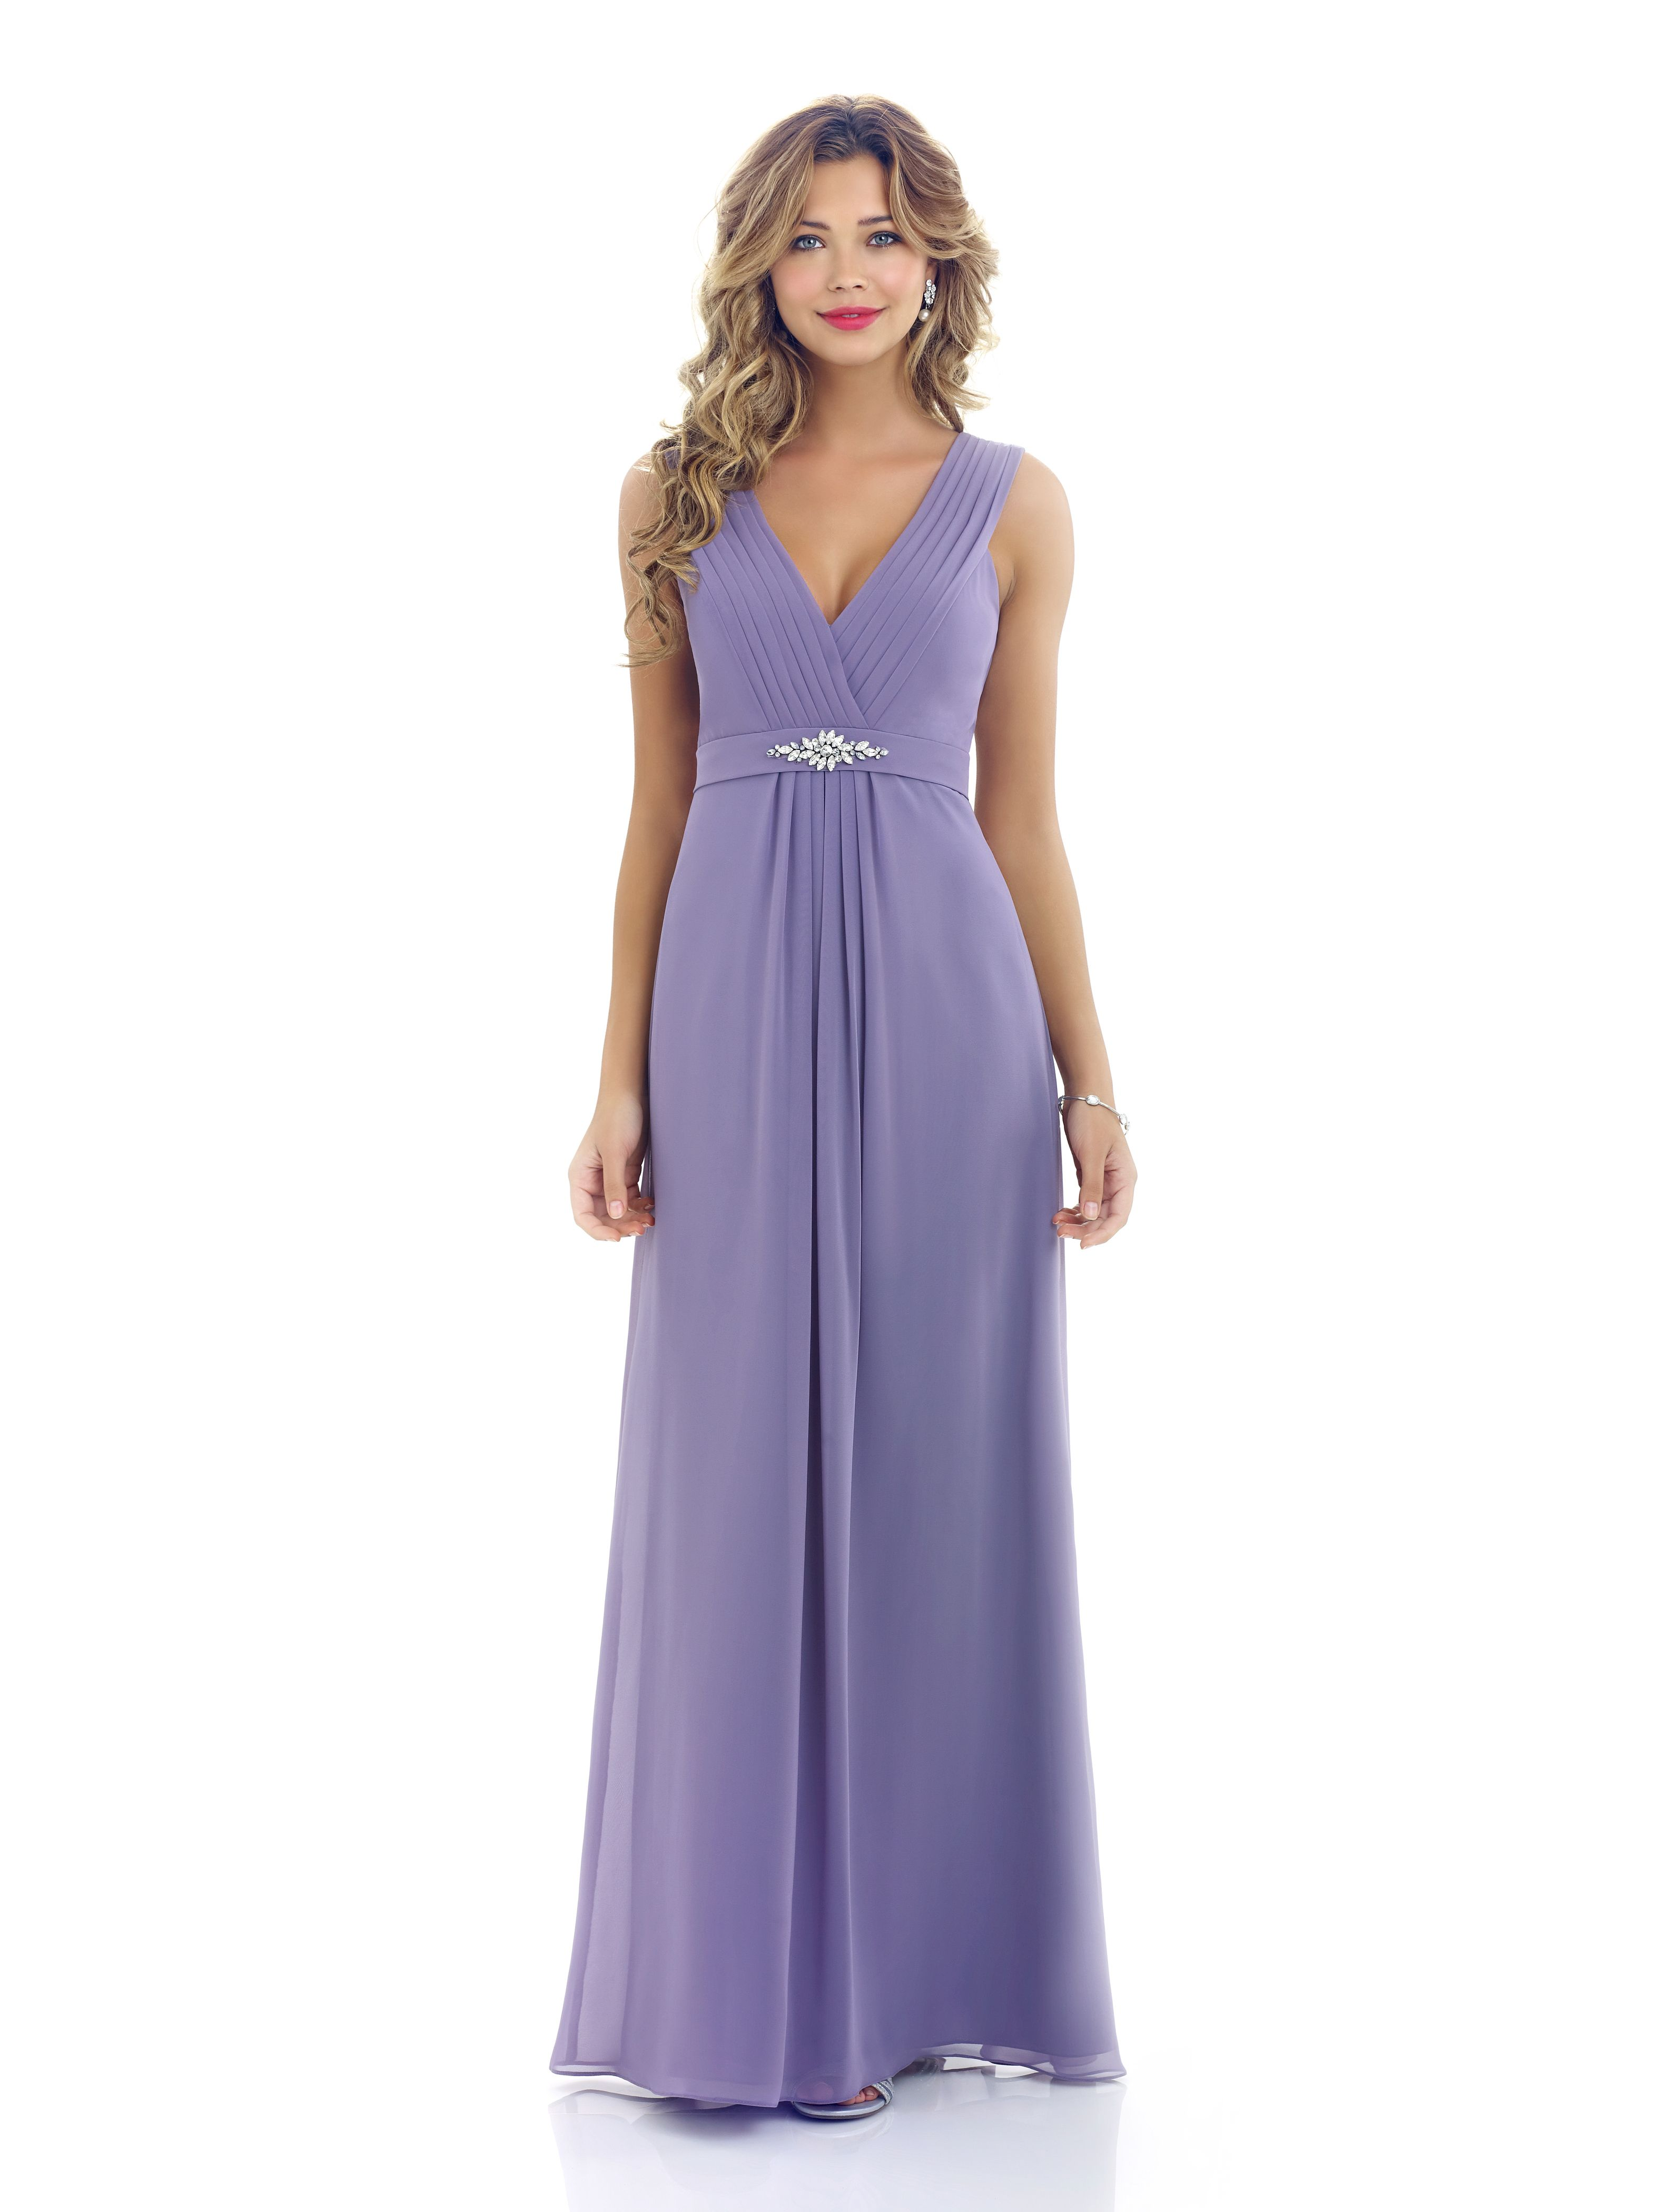 Alexia Style 4200 Long Chiffon Bridesmaid Dress